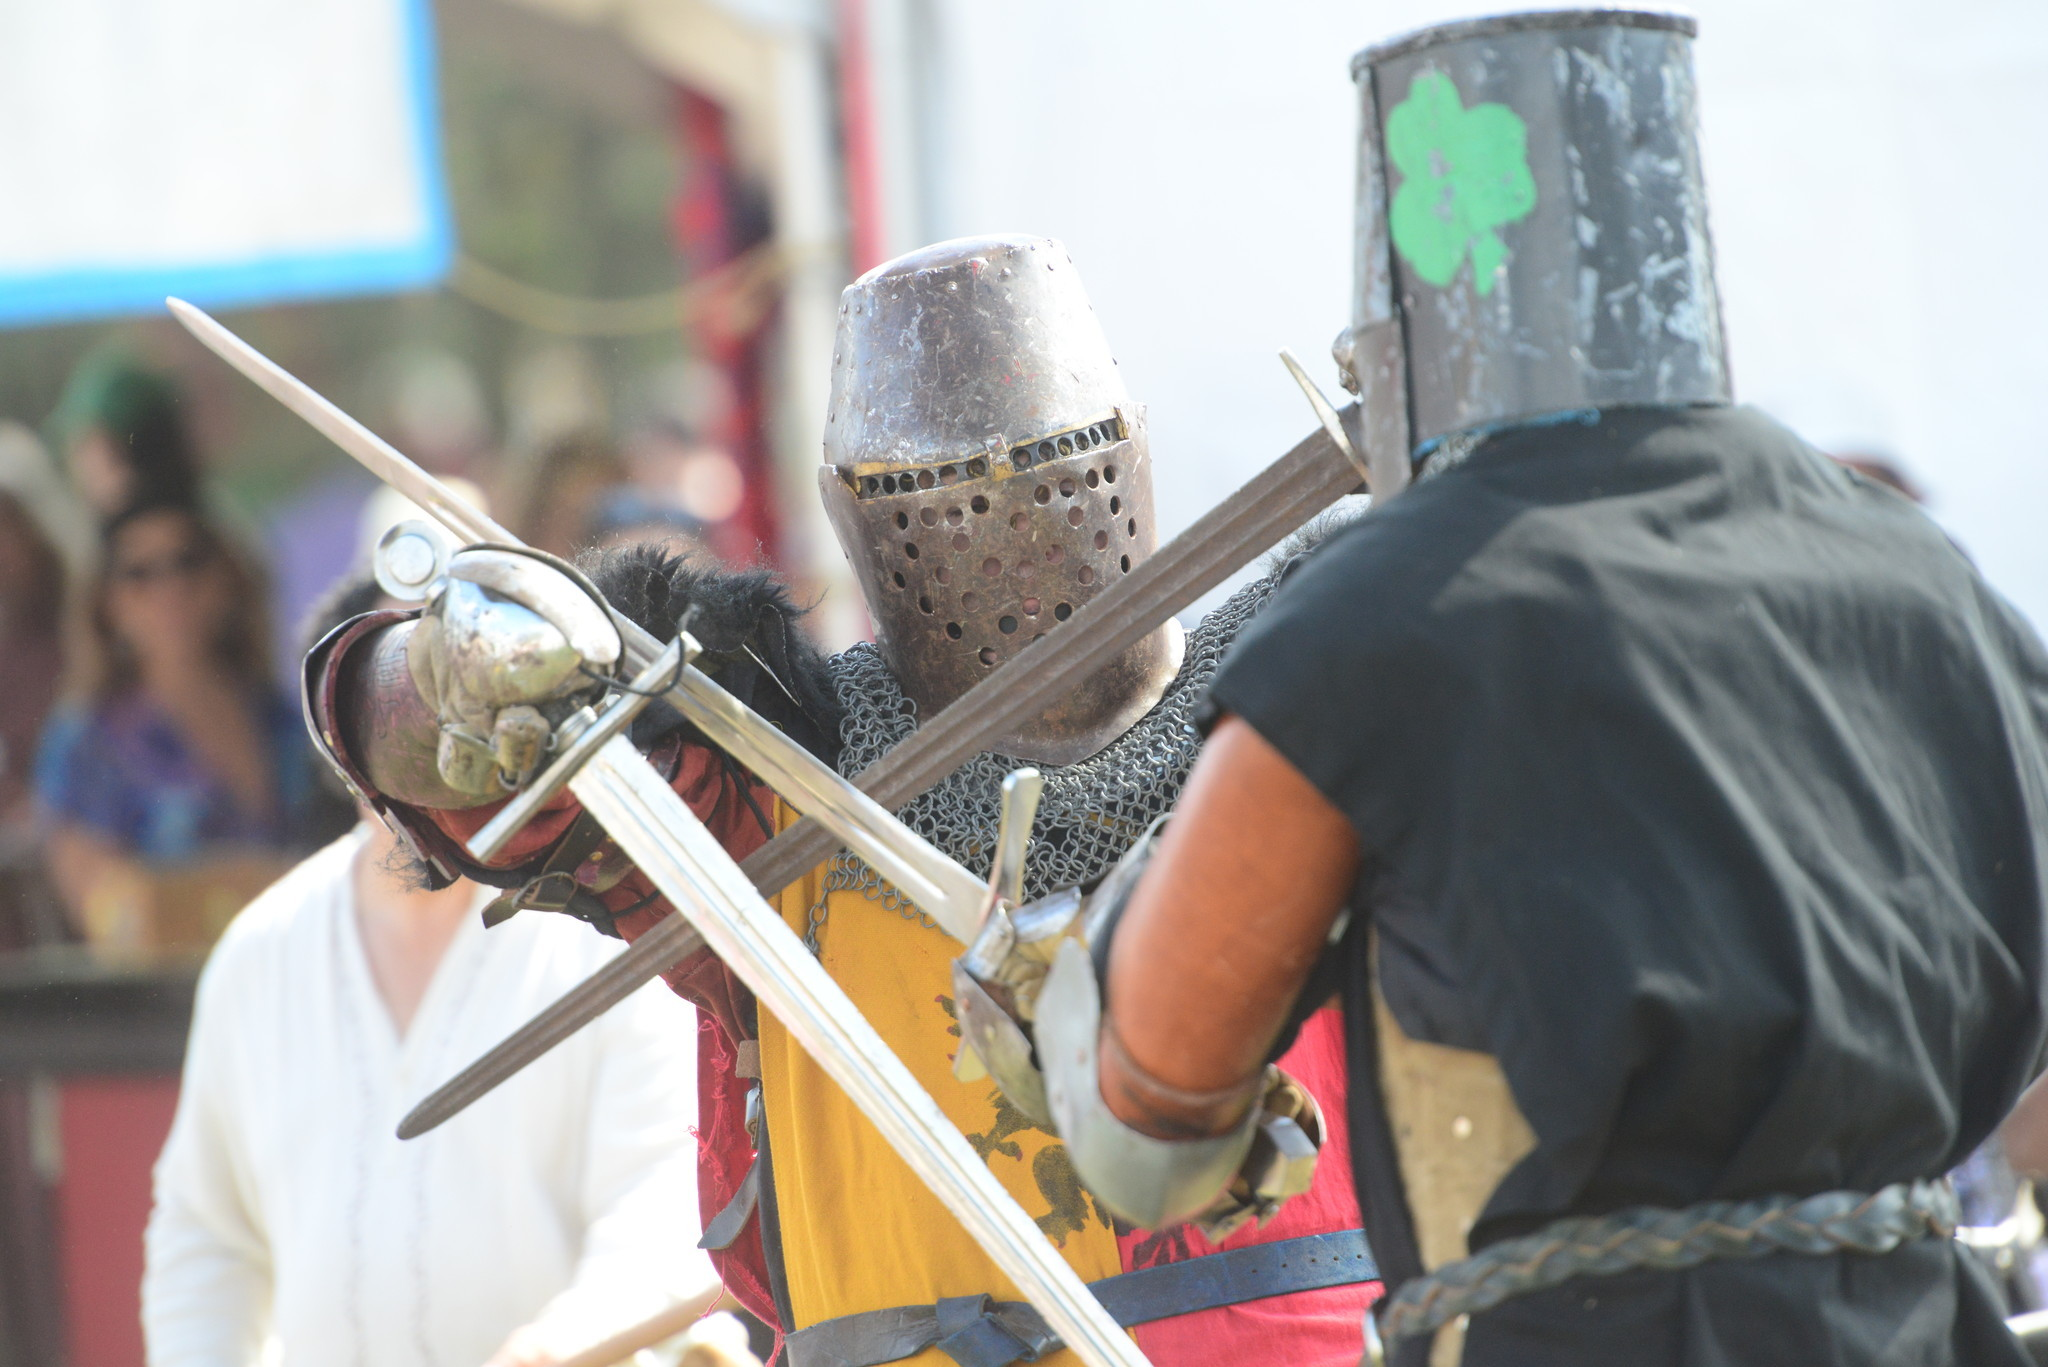 Renaissance Festival photos - Steel